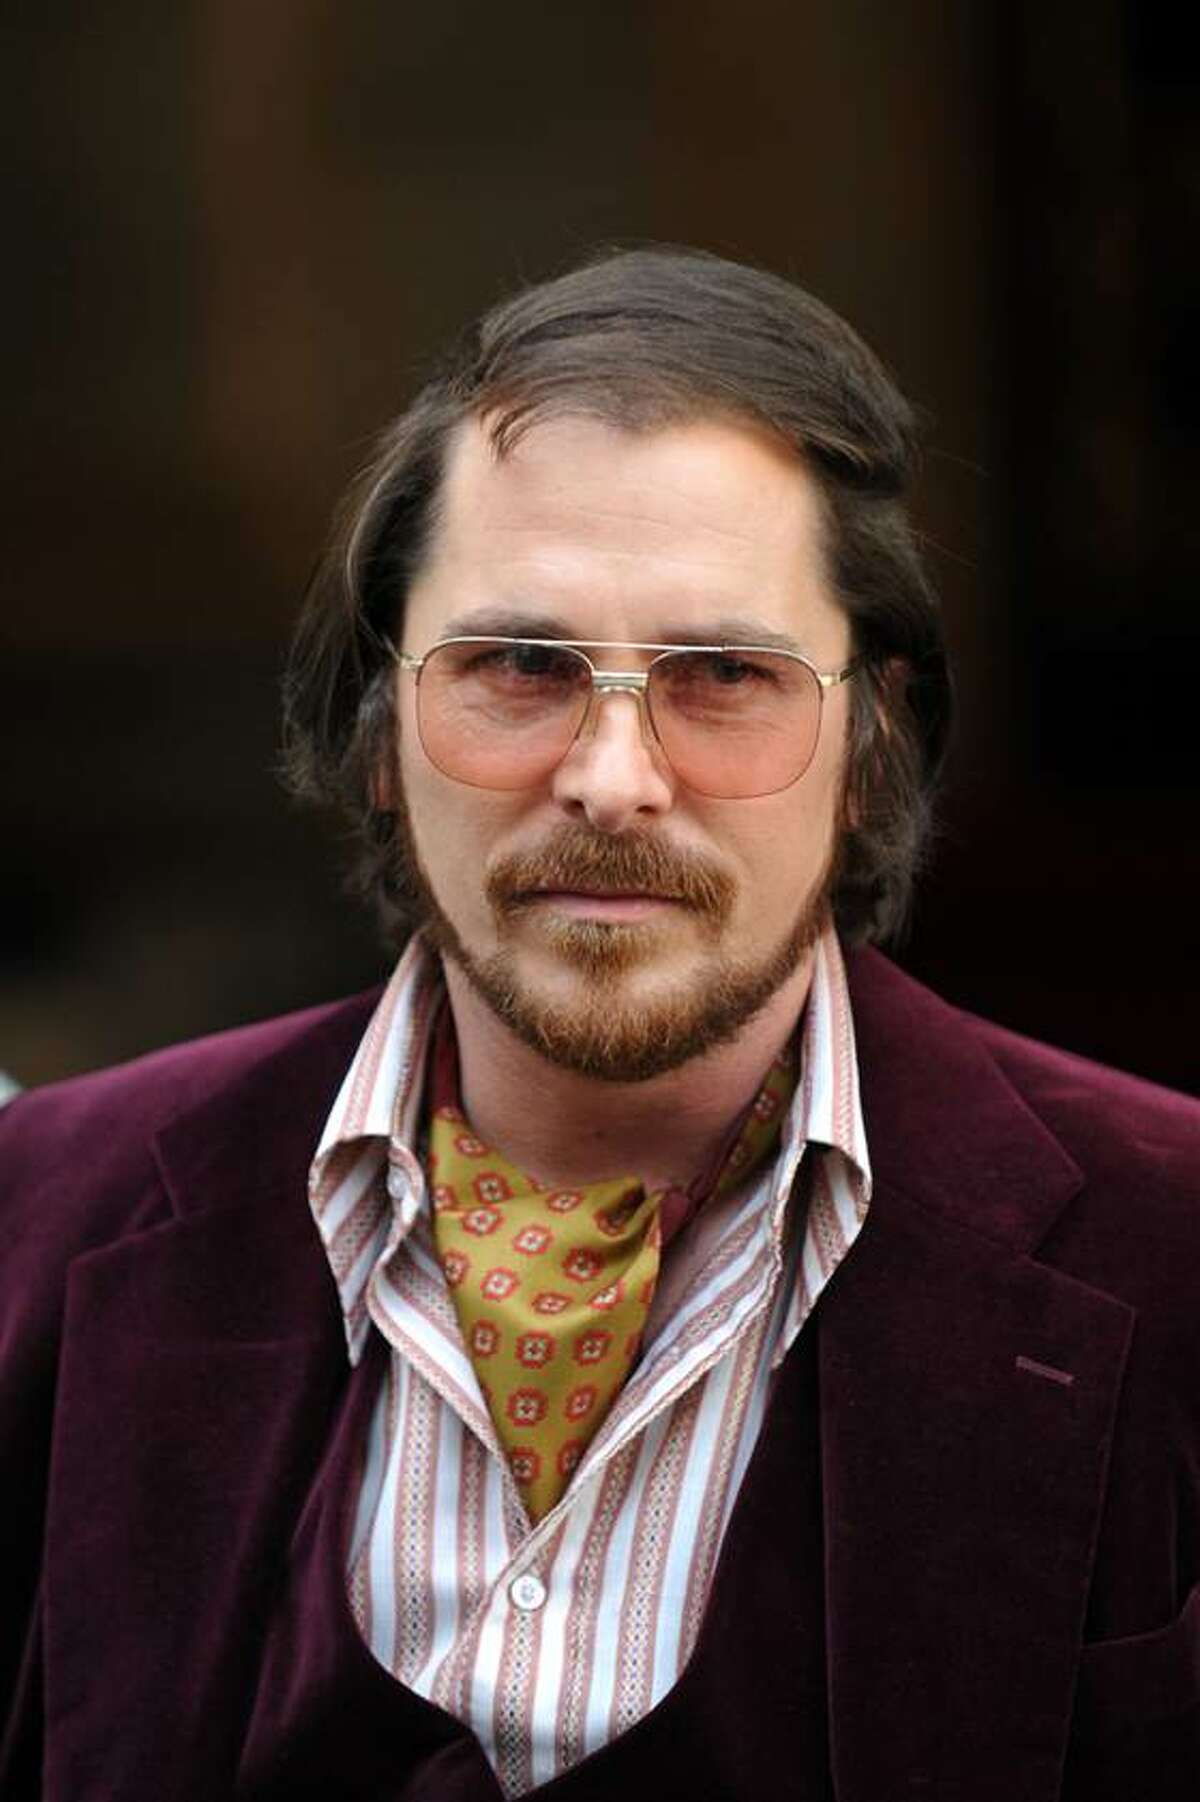 """Christian Bale earned his second nomination for packing on extra pounds, sporting this wig and, oh yeah, great acting in """"American Hustle."""" He won Best Supporting Actor for """"The Fighter"""" in 2011."""